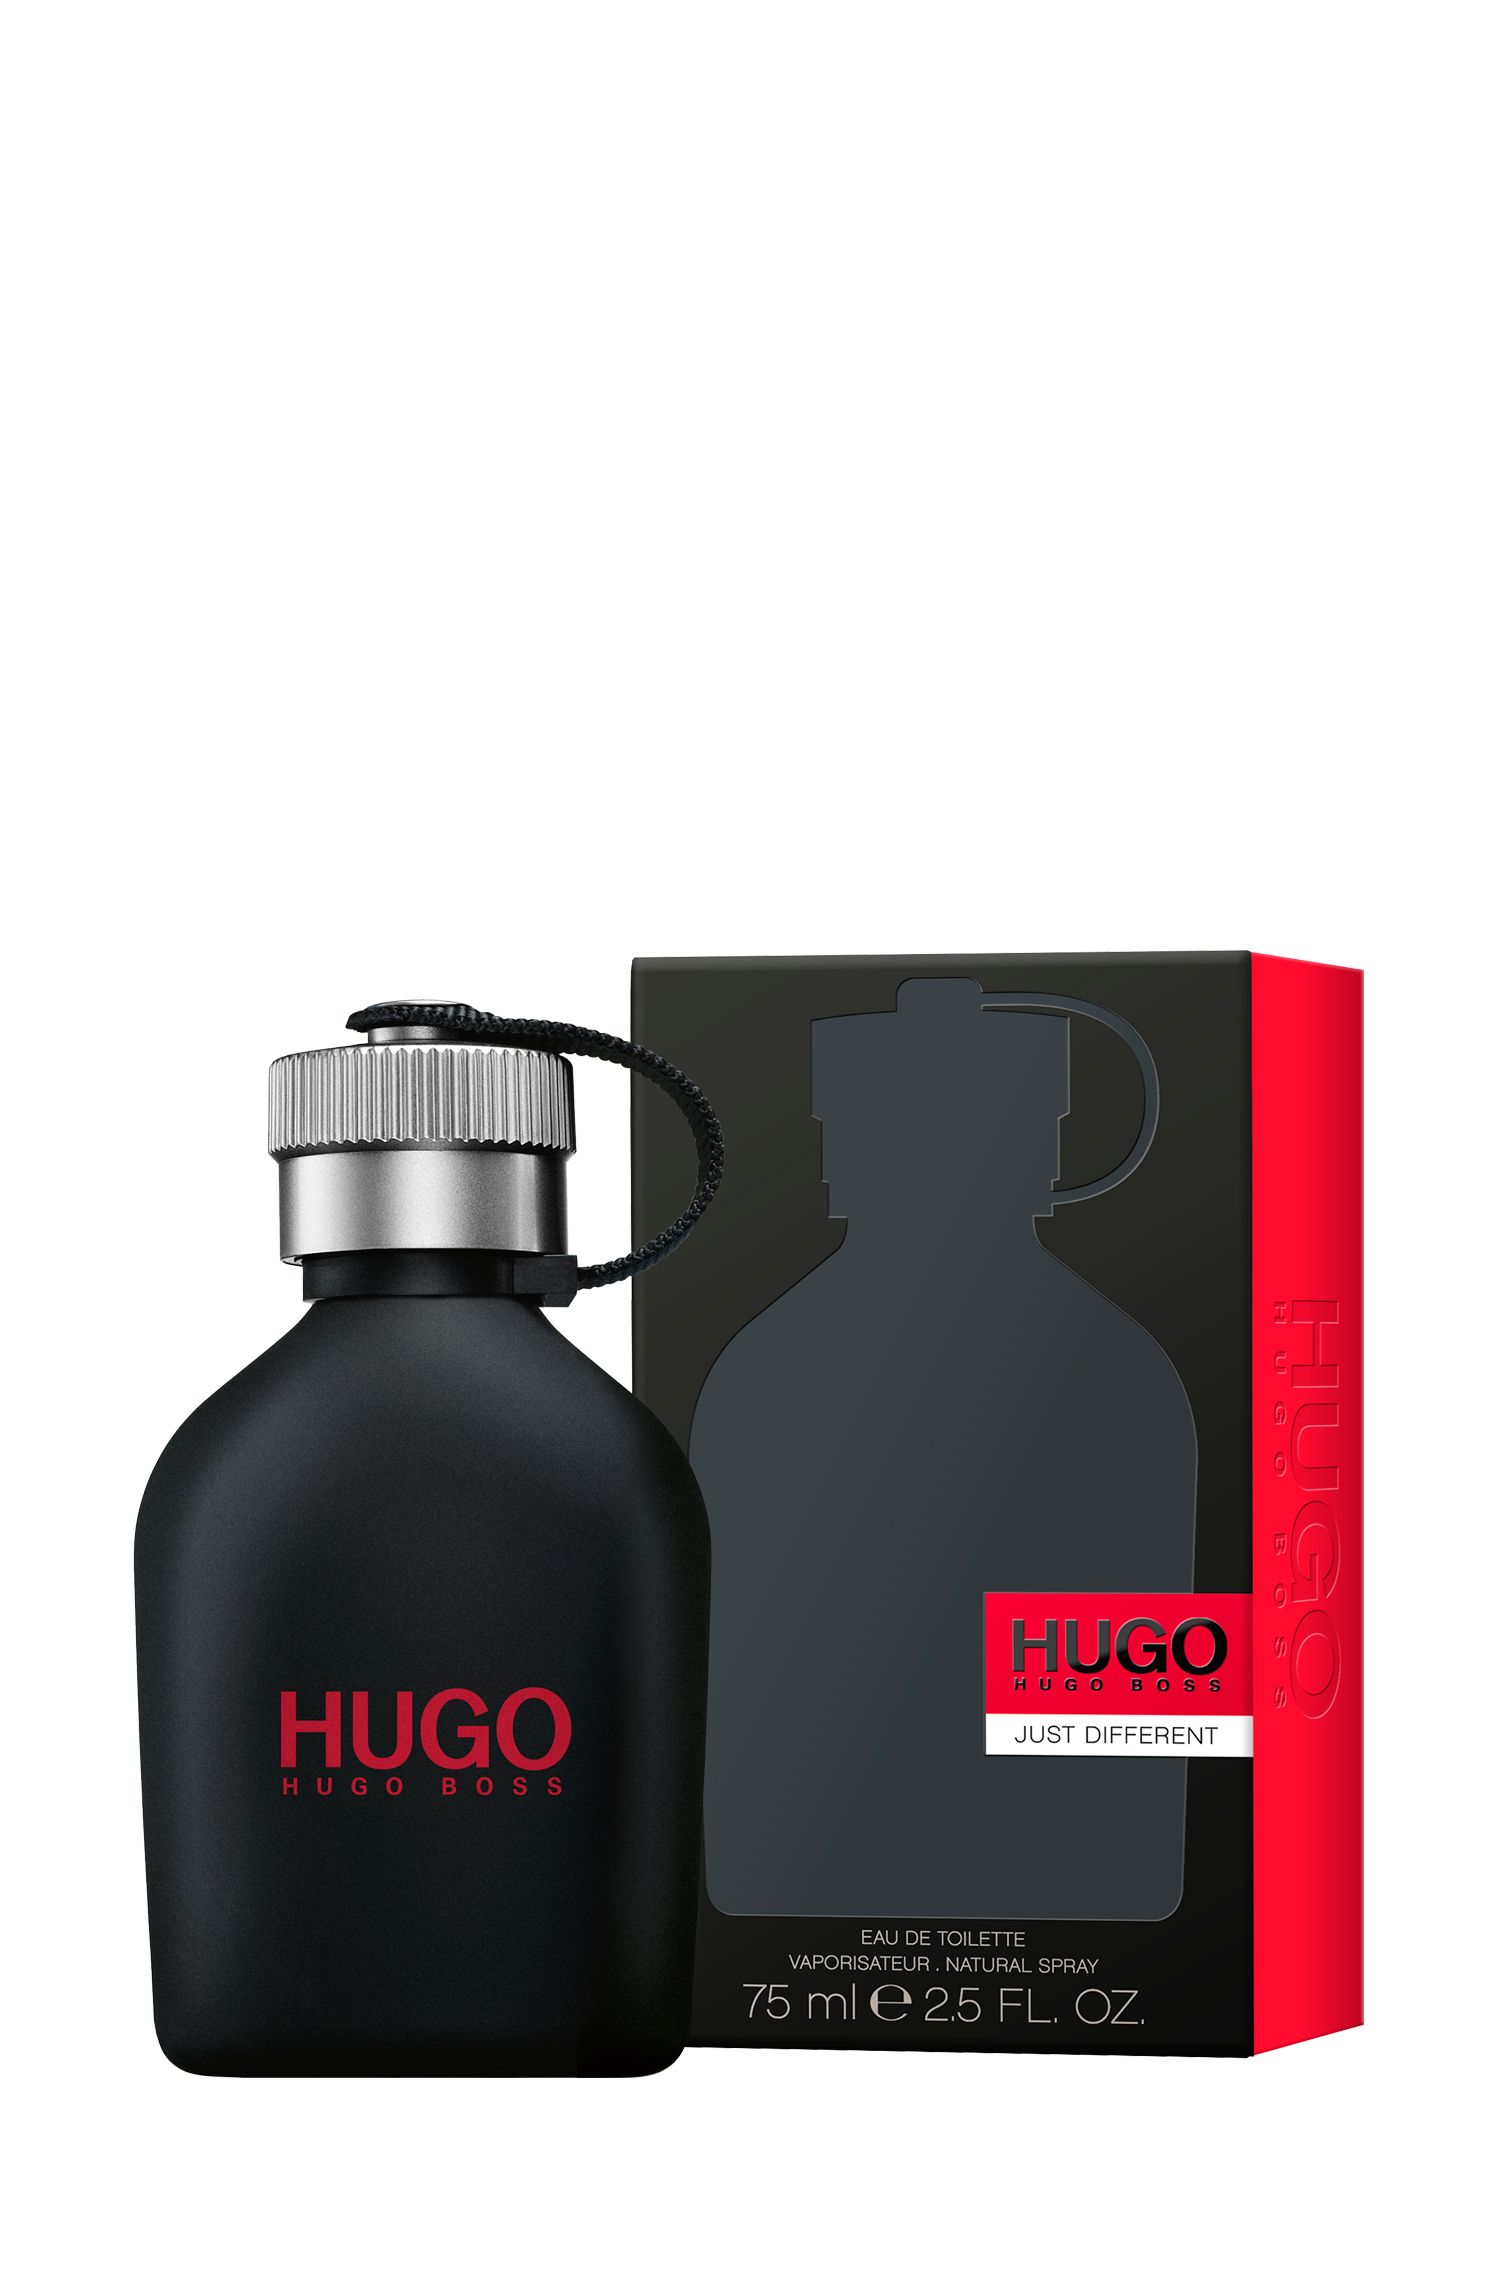 Eau de toilette HUGO Just Different de 75 ml, Assorted-Pre-Pack